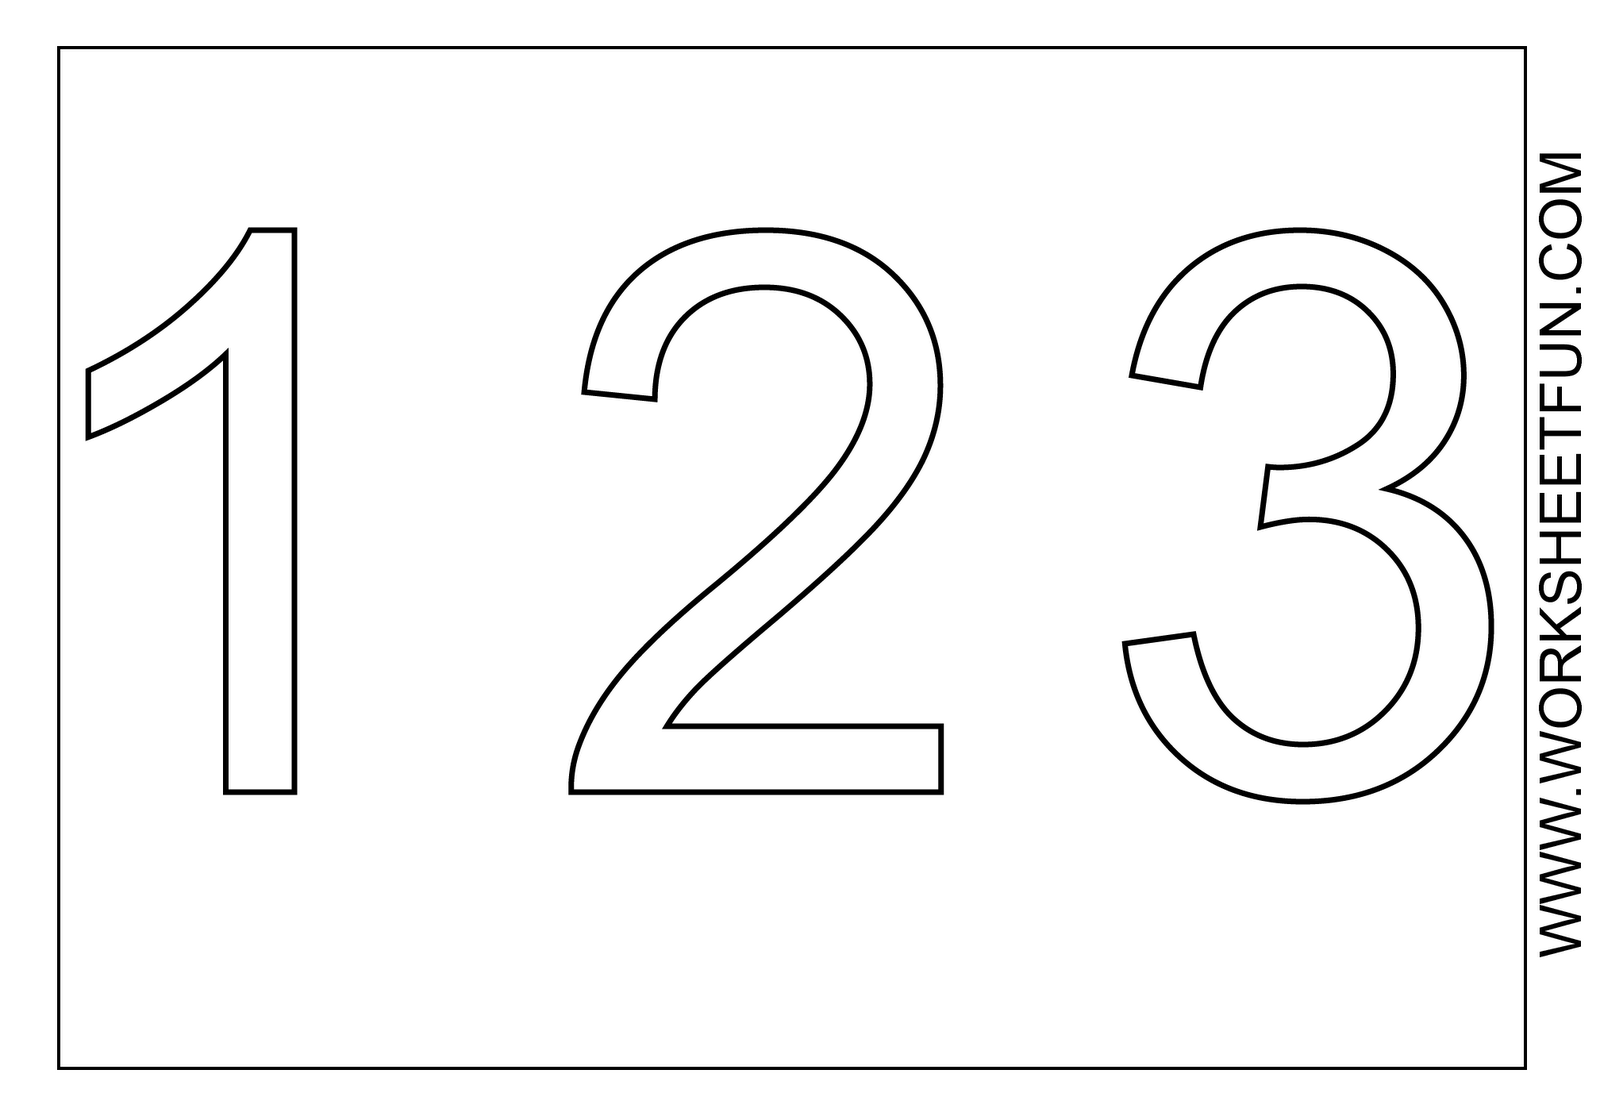 number 3 coloring pages preschool number 3 coloring page coloring home 3 coloring preschool number pages